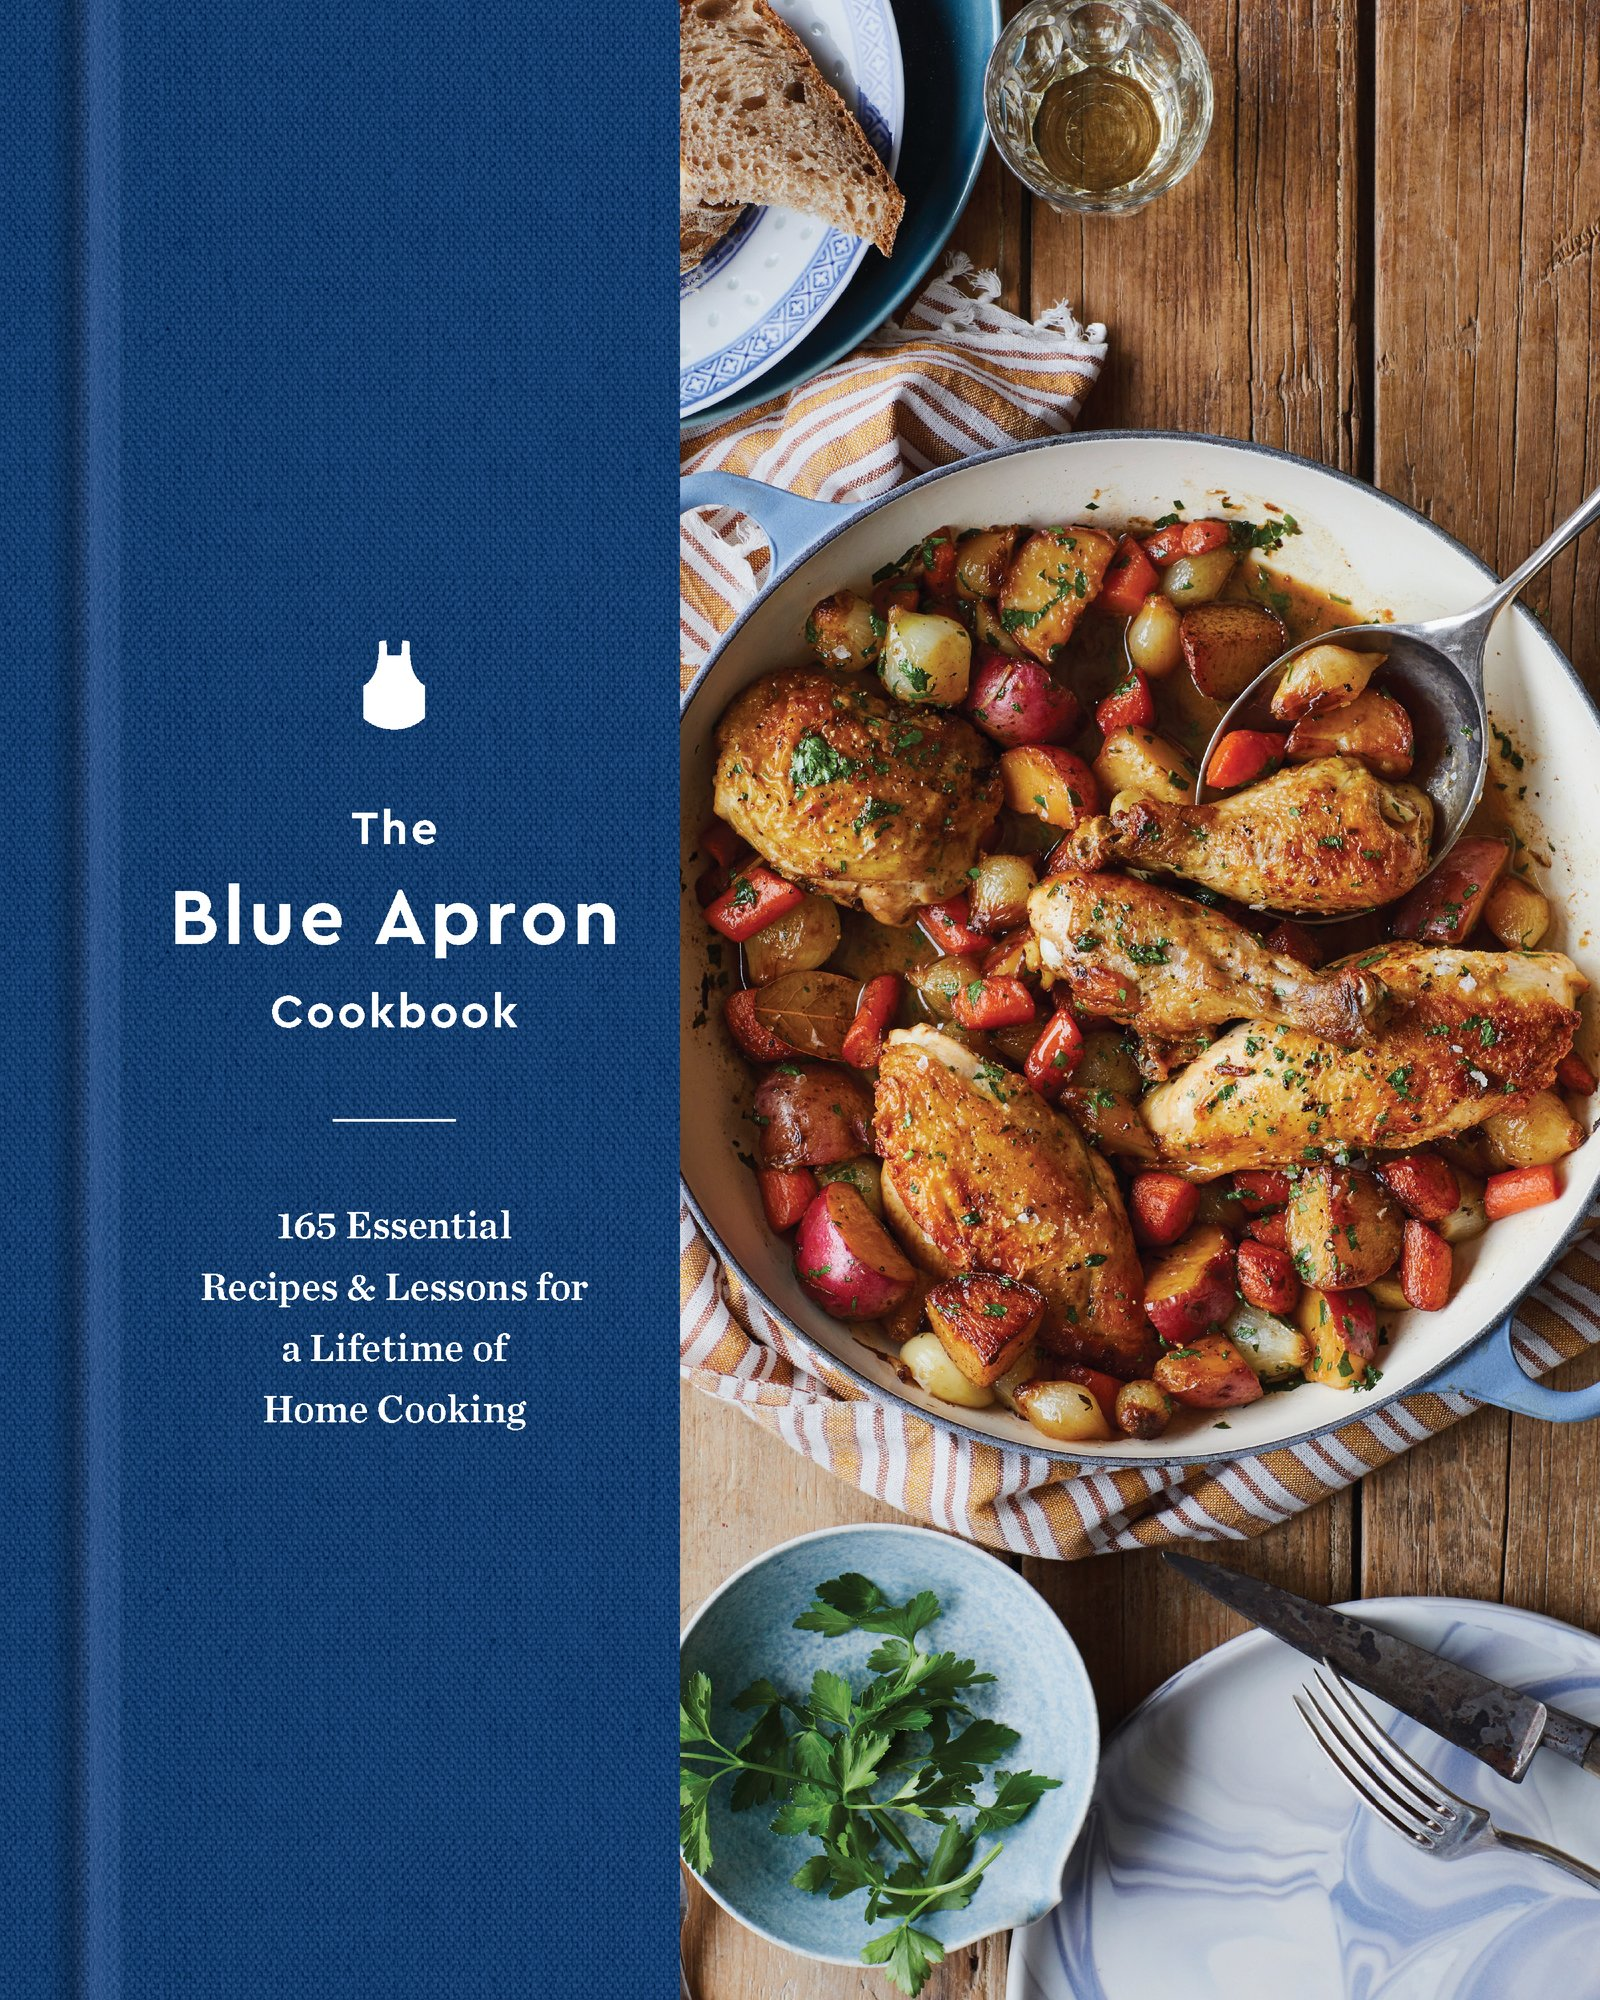 Blue apron warehouse - The Blue Apron Cookbook 165 Essential Recipes And Lessons For A Lifetime Of Home Cooking Blue Apron Culinary Team 9780062562760 Amazon Com Books